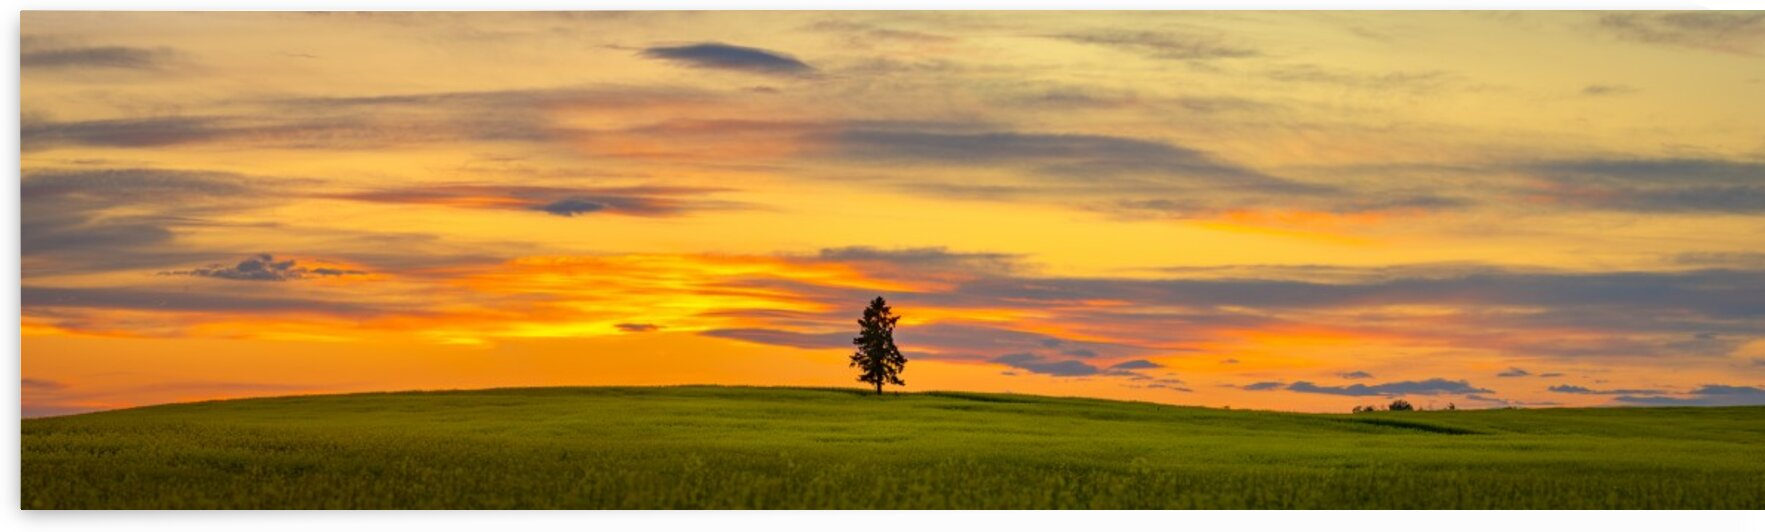 Sunset Pano by Andrew OBrien